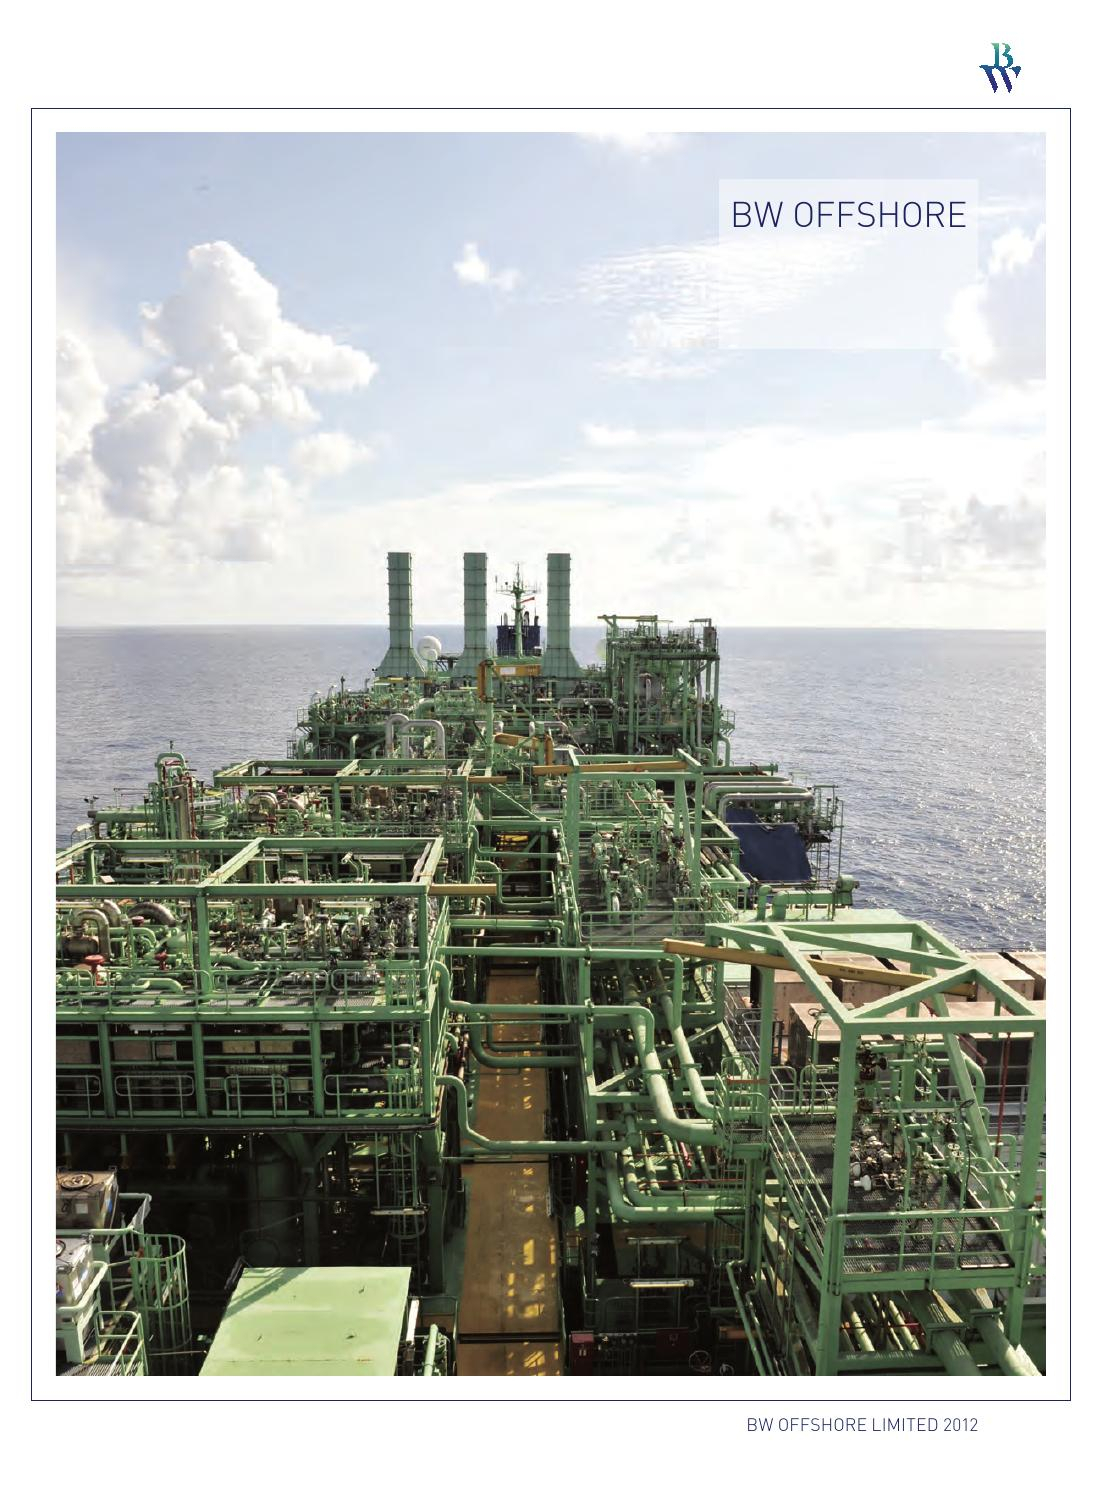 Bwo Editorial Report By Sommerseth Design  Issuu inside Offshore Rotation Calendar